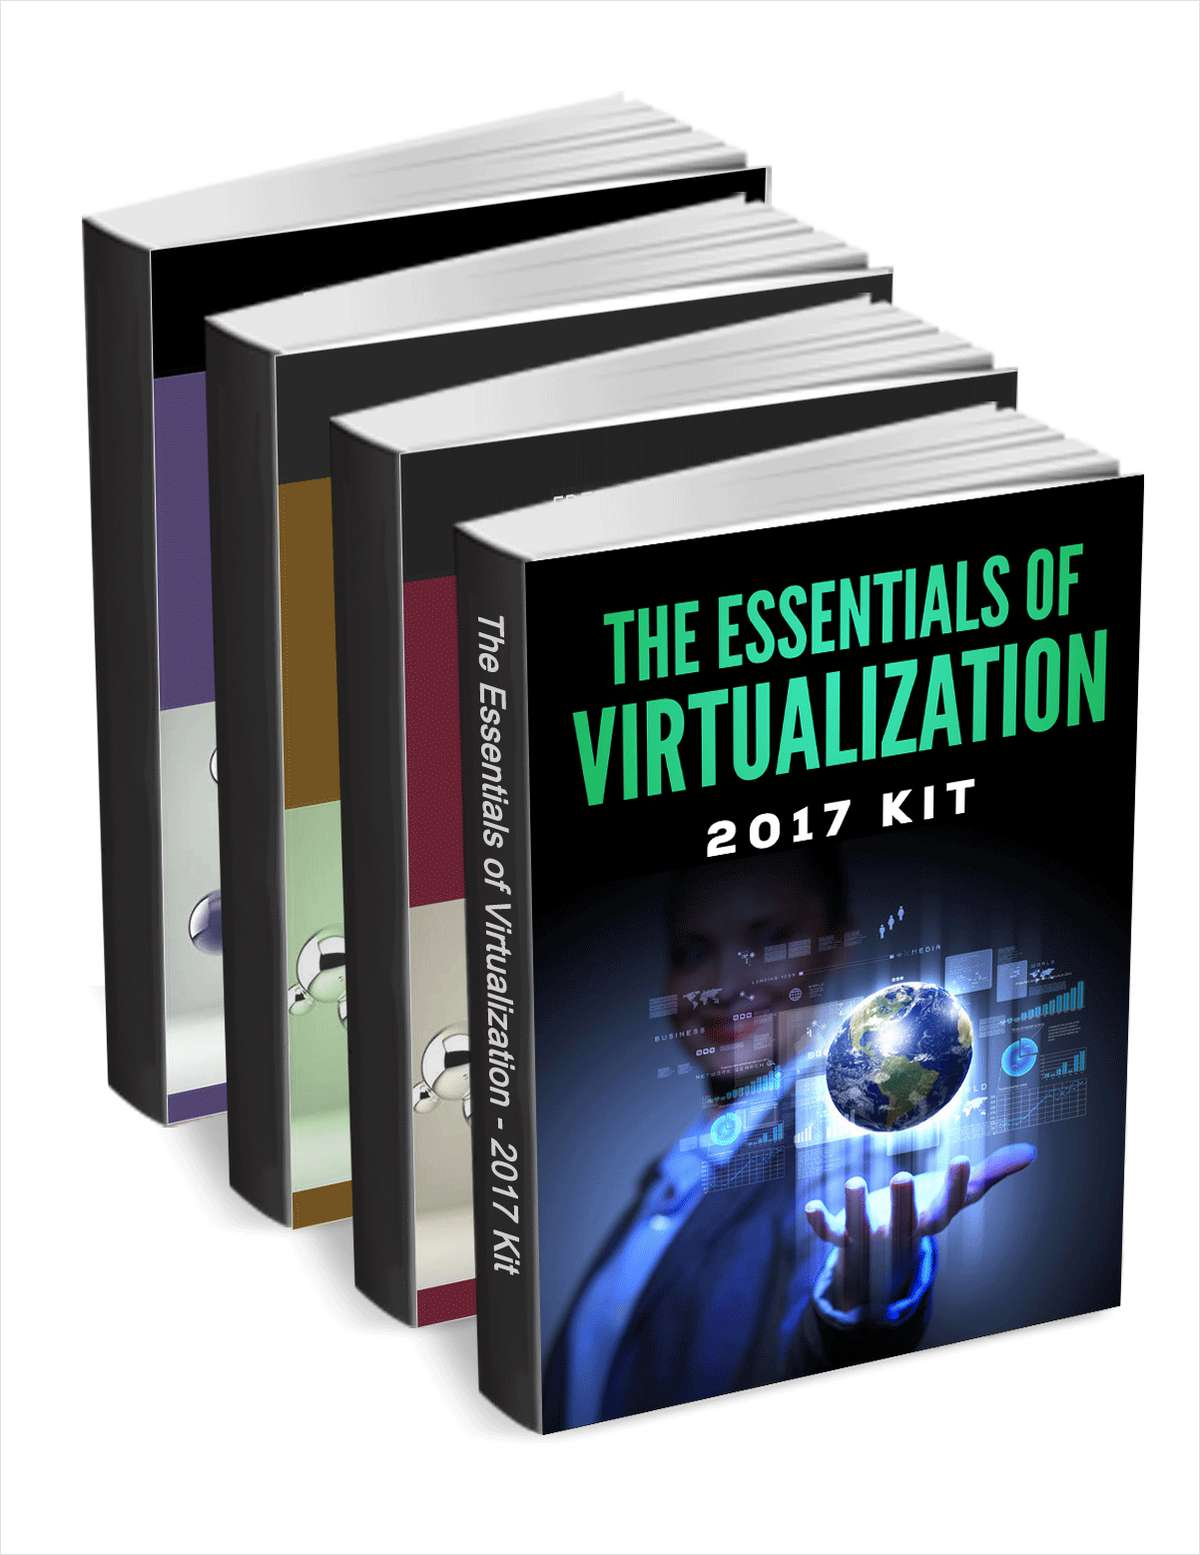 Trending Now: This Month's Top Virtualization Resources